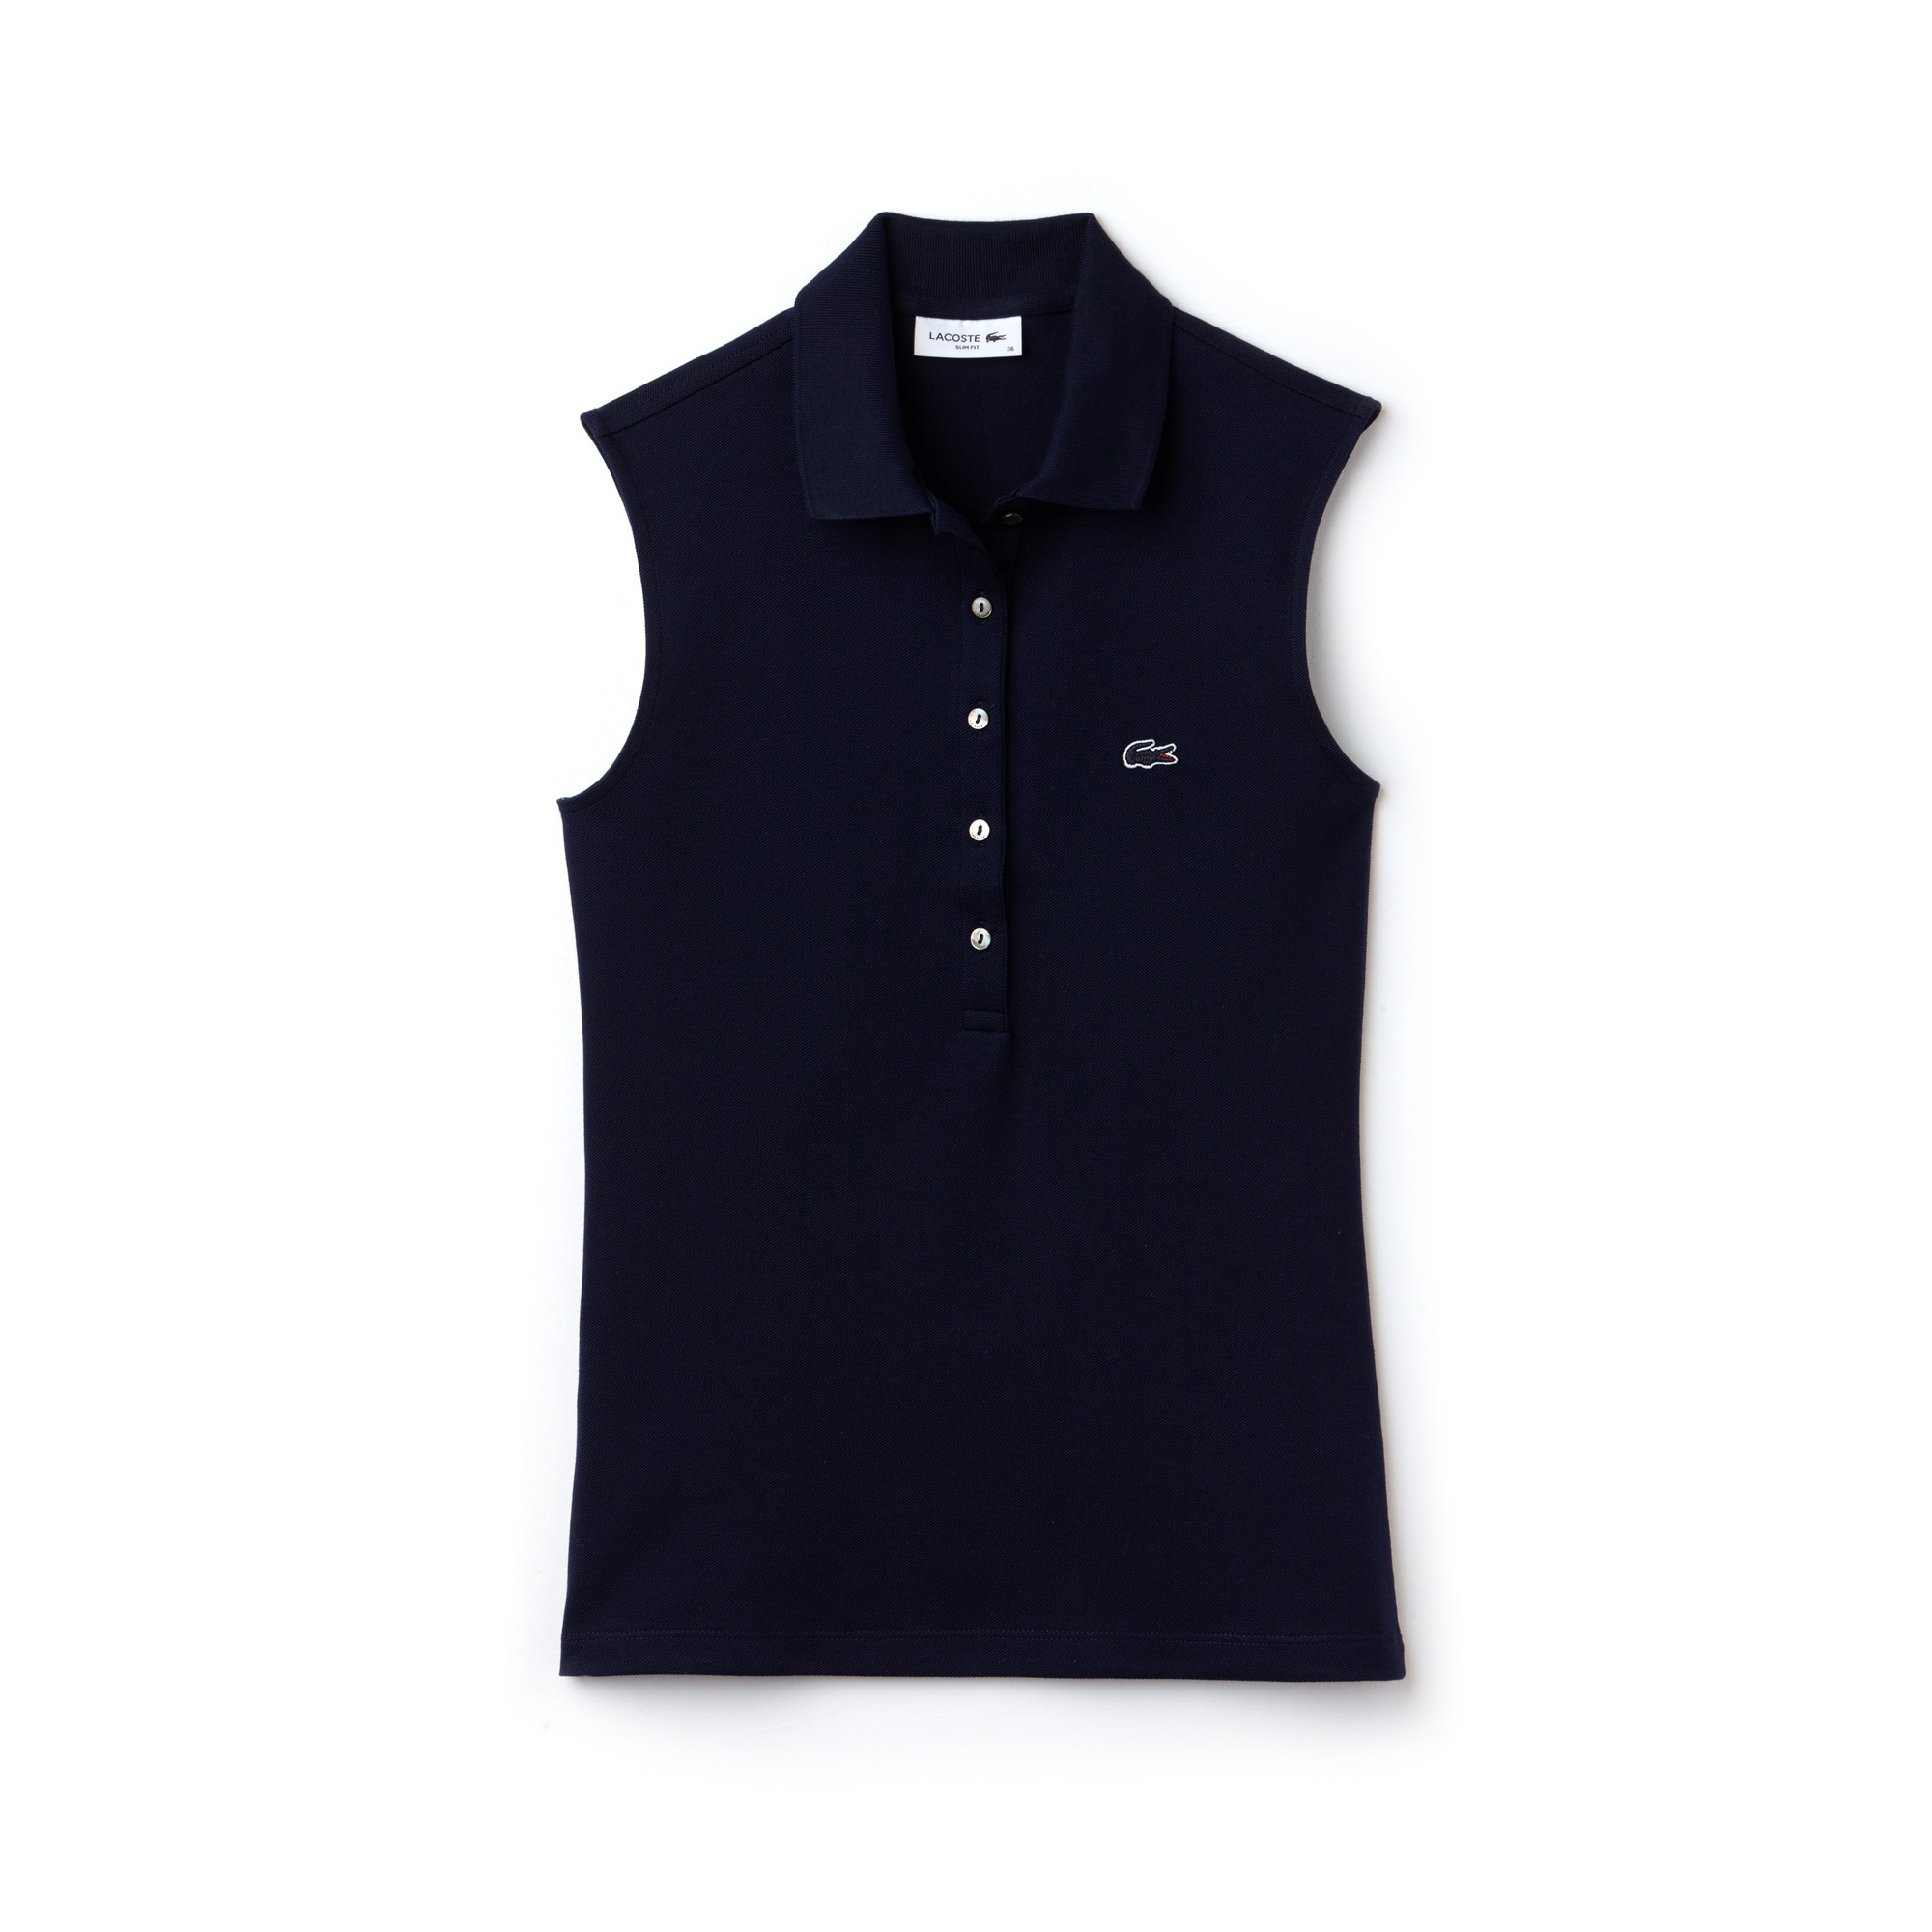 Polo sans manches slim fit Lacoste en mini piqué stretch uni